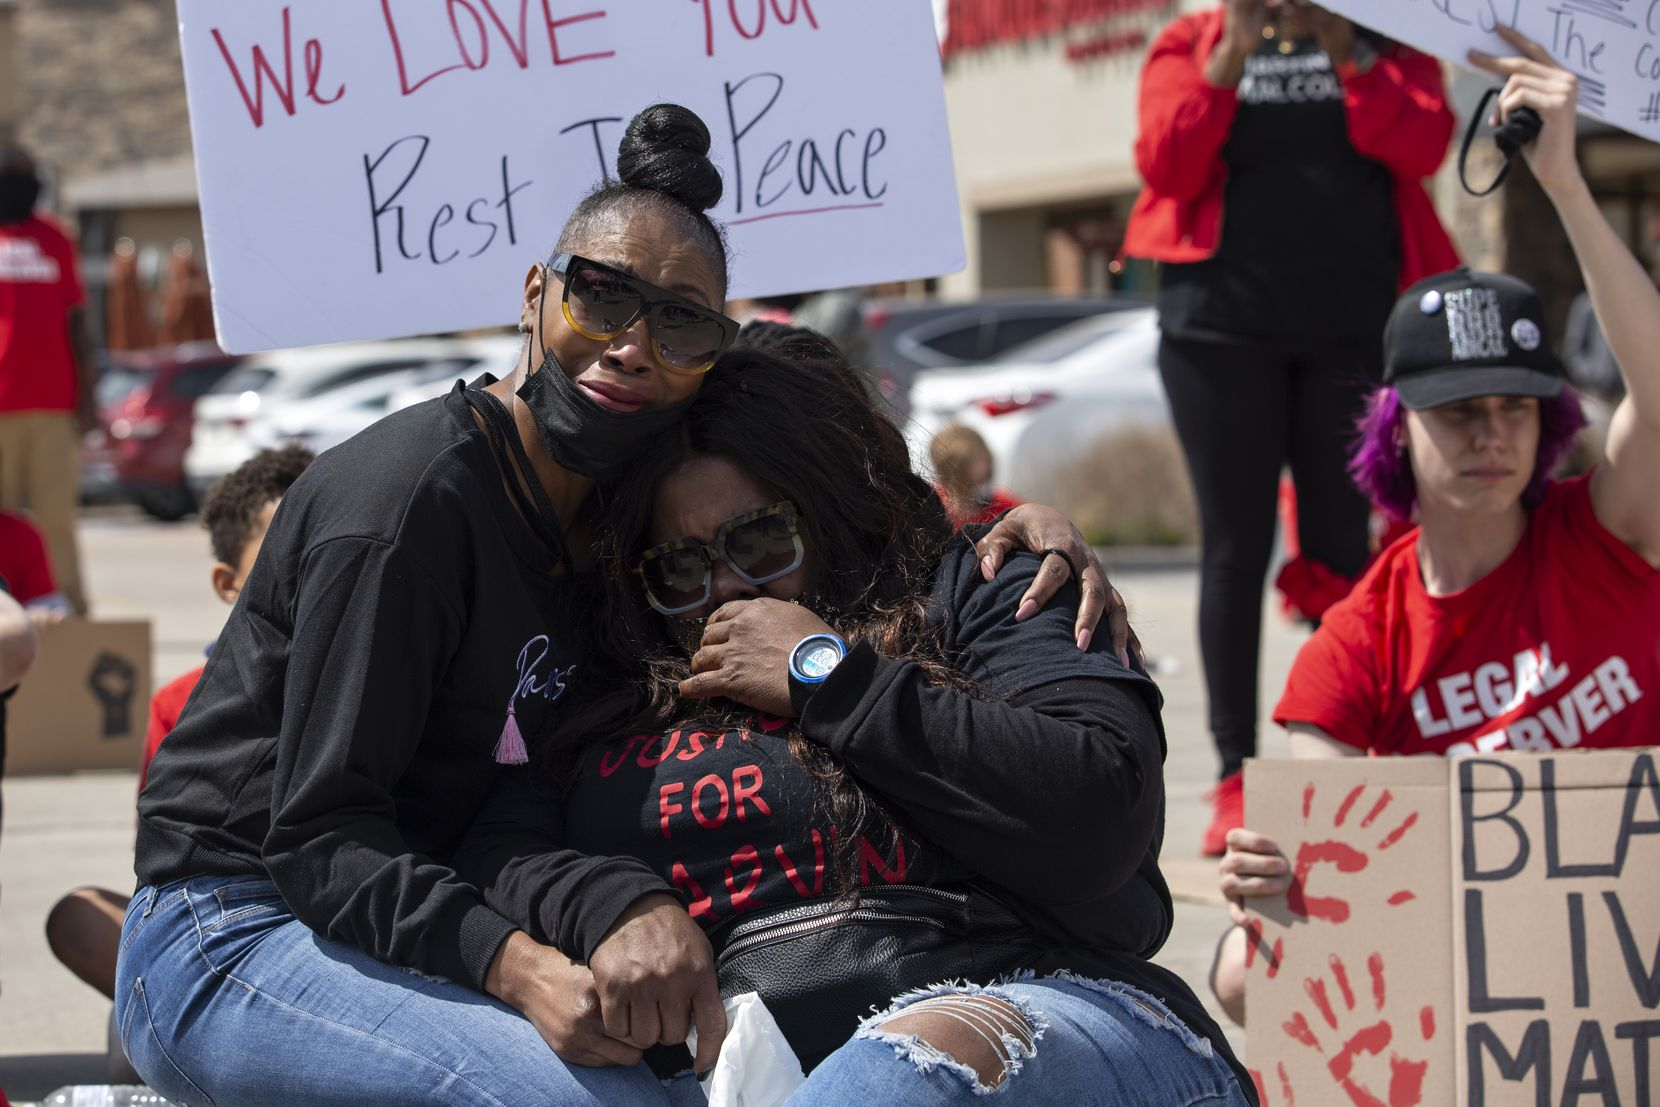 Pynun Stevenson comforts Lassandra Scott at the Allen Outlets on Sunday, March 21, 2021 demanding justice for LassandraÕs son Marvin Scott III, who died a week prior while in custody at the Collin County Jail on March 14, 2021. Marvin Scott III was arrested at the Allen Outlets for possession of less than two ounces of marijuana. Demonstrators called for the arrest of the ÒCollin County SevenÓ, the seven Collin County Jail employees who were placed on leave after MarvinÕs death. (Shelby Tauber/Special Contributor)